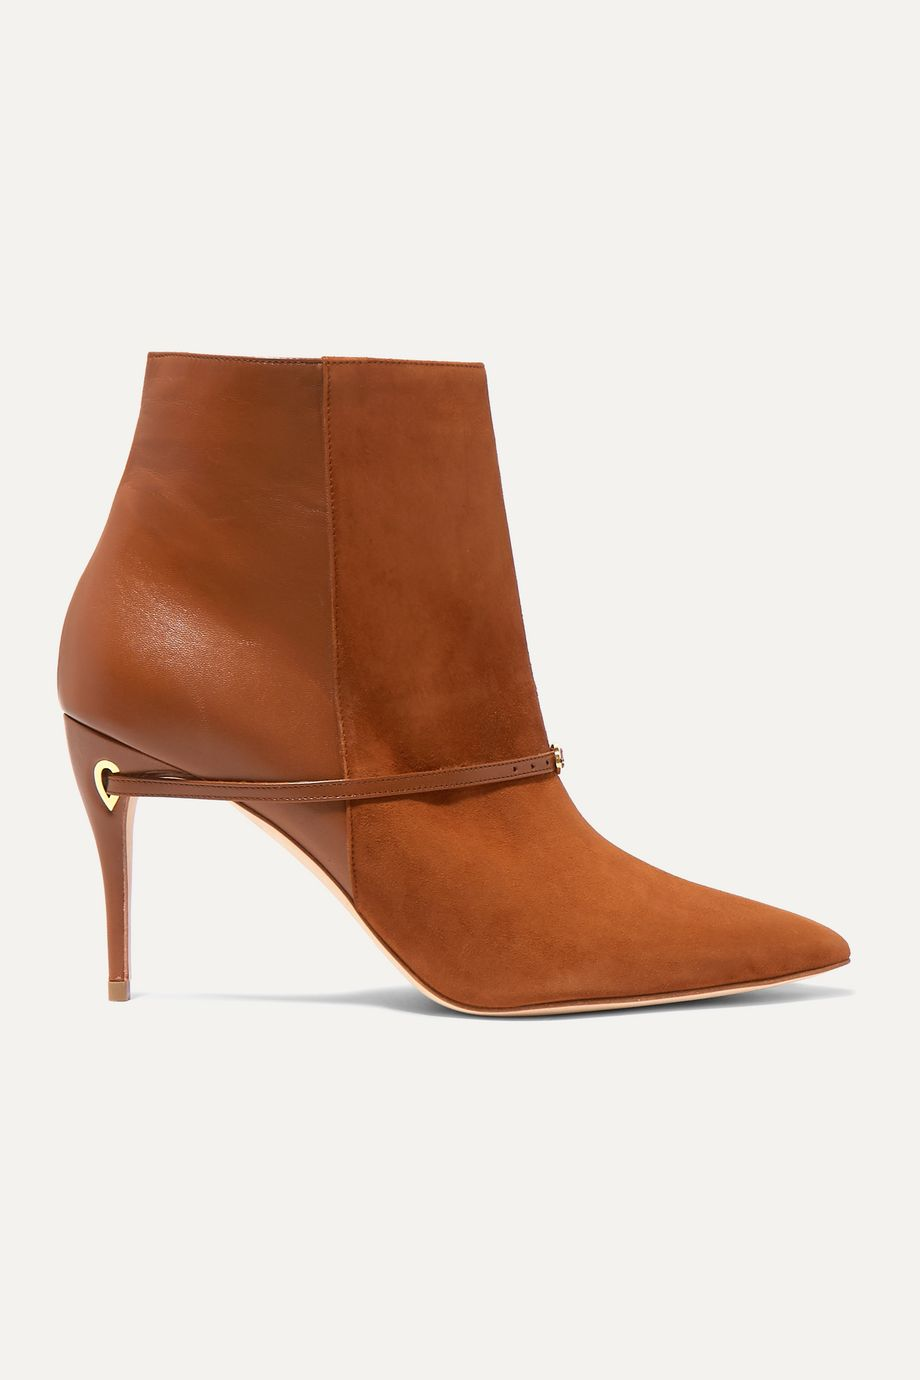 Jennifer Chamandi Nicolò 85 suede and leather ankle boots